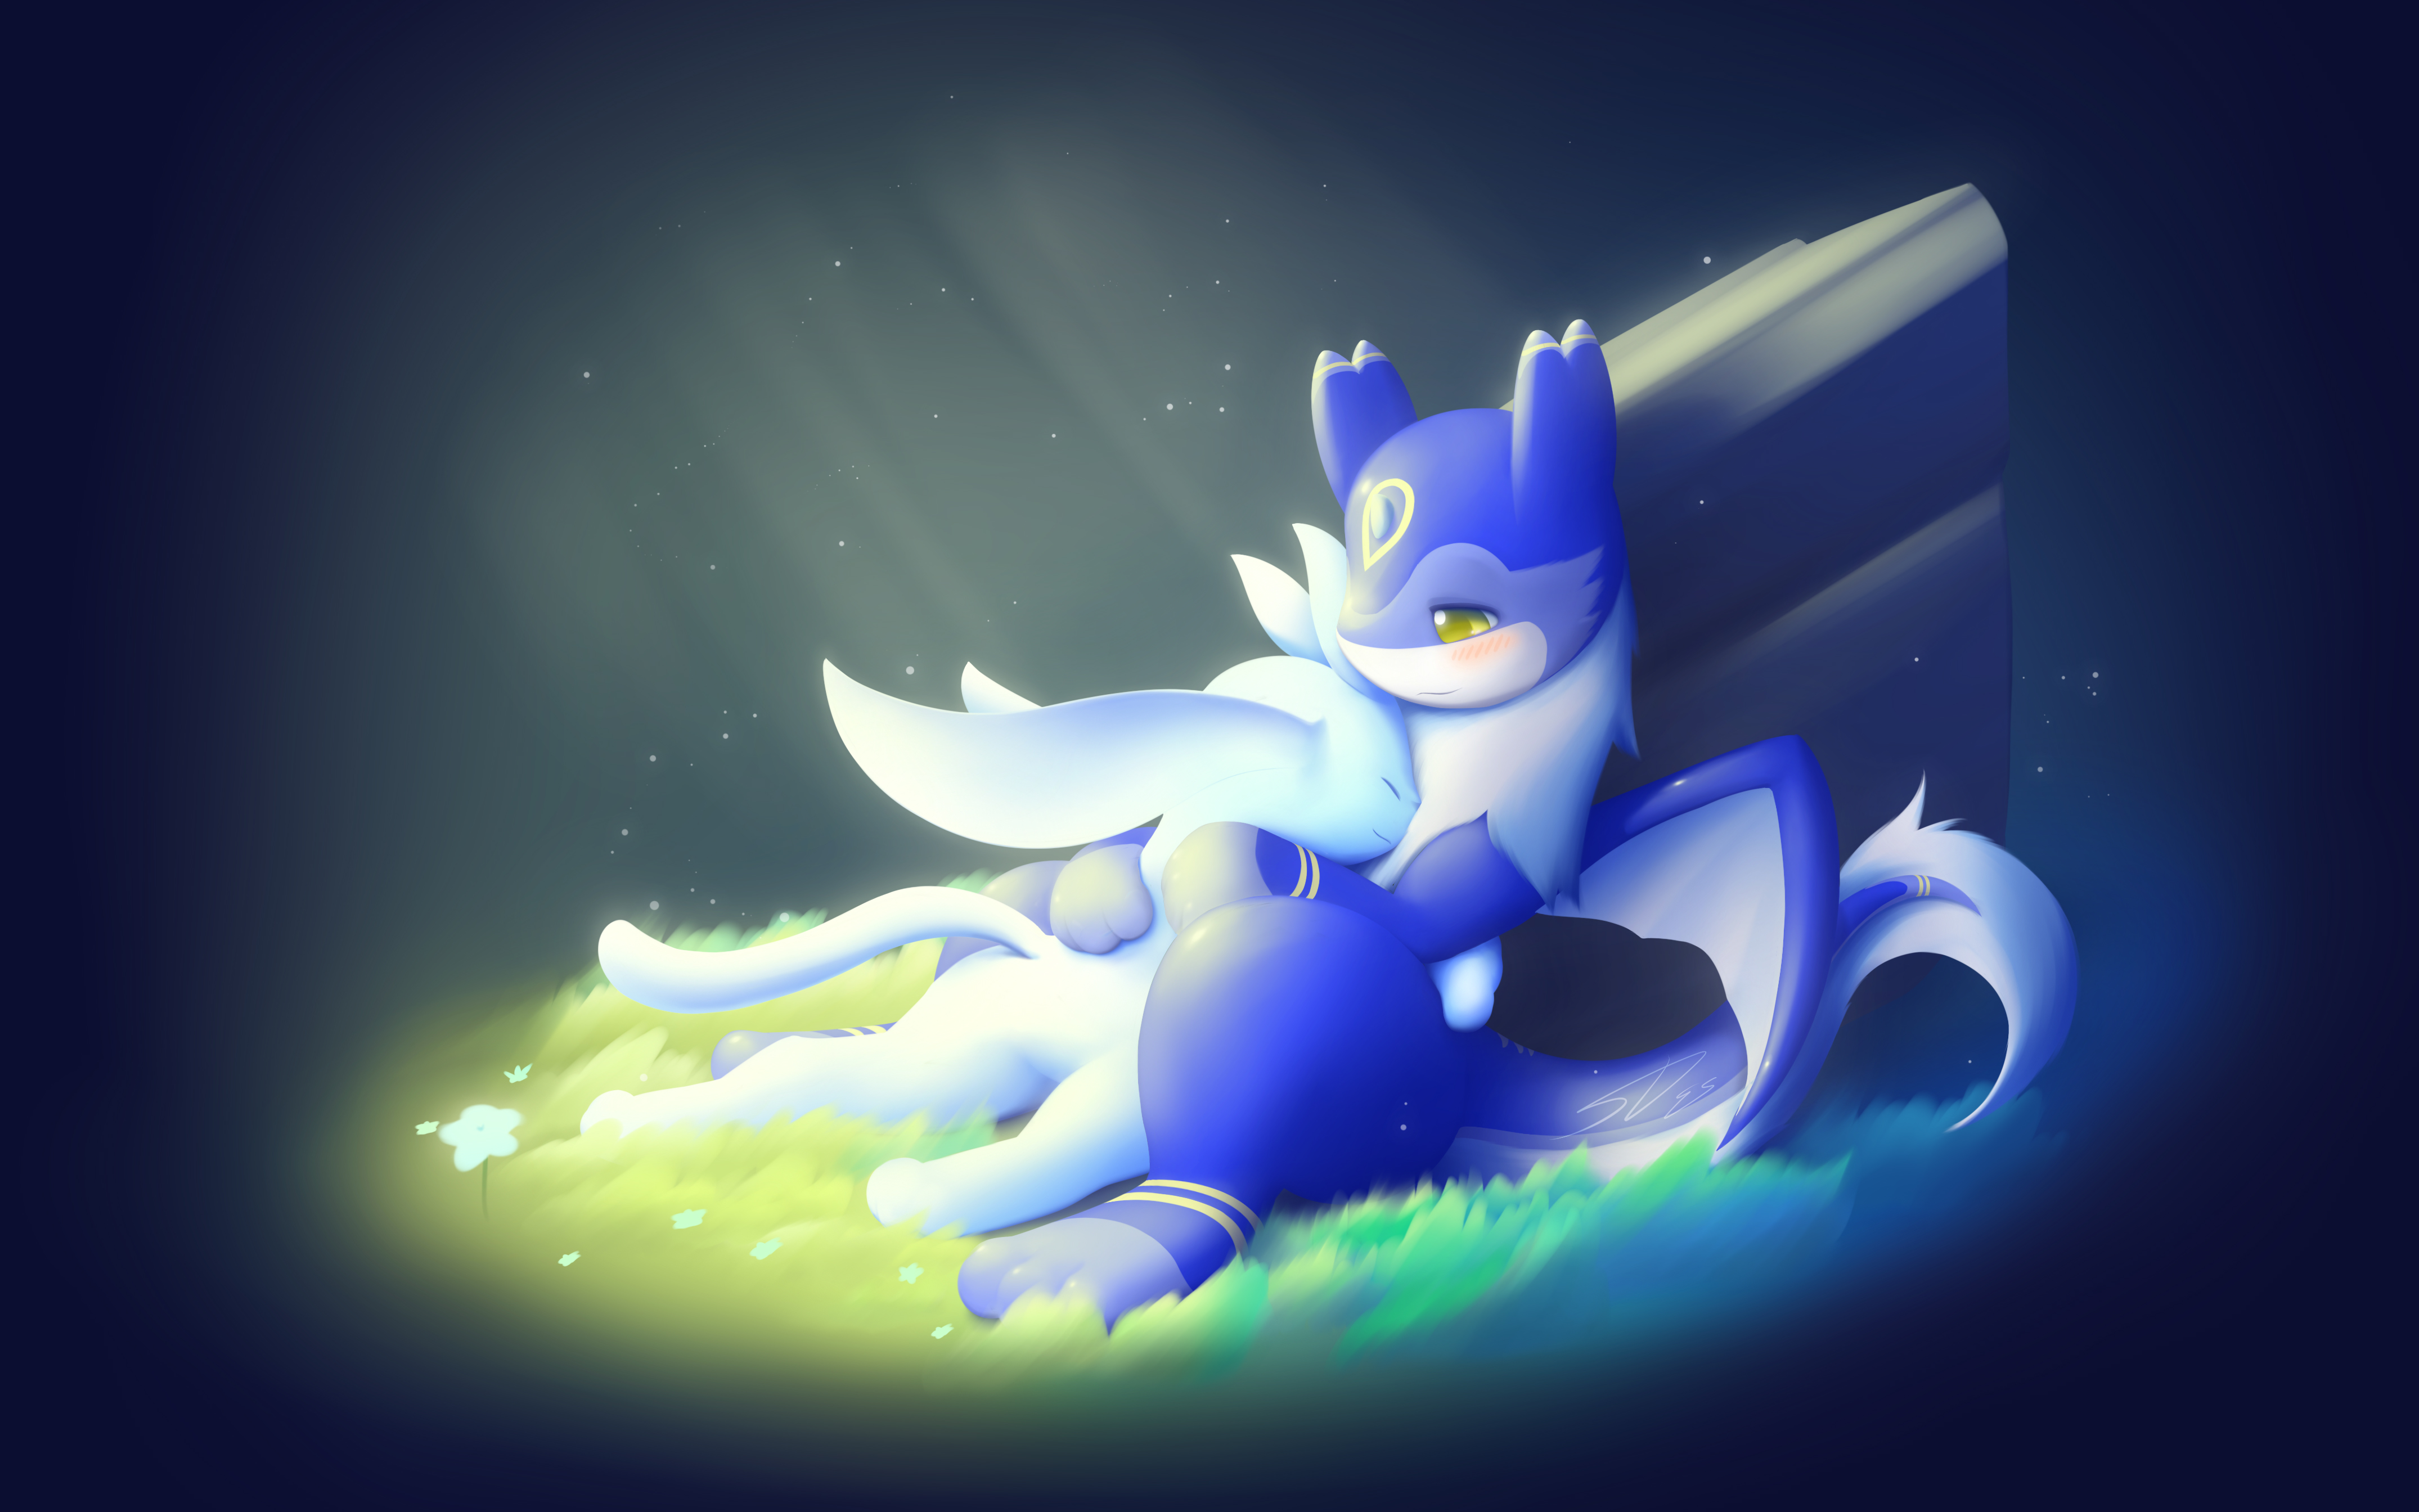 Ori And The Blind Forest Fan Art 4k Wallpapers Hd Wallpapers